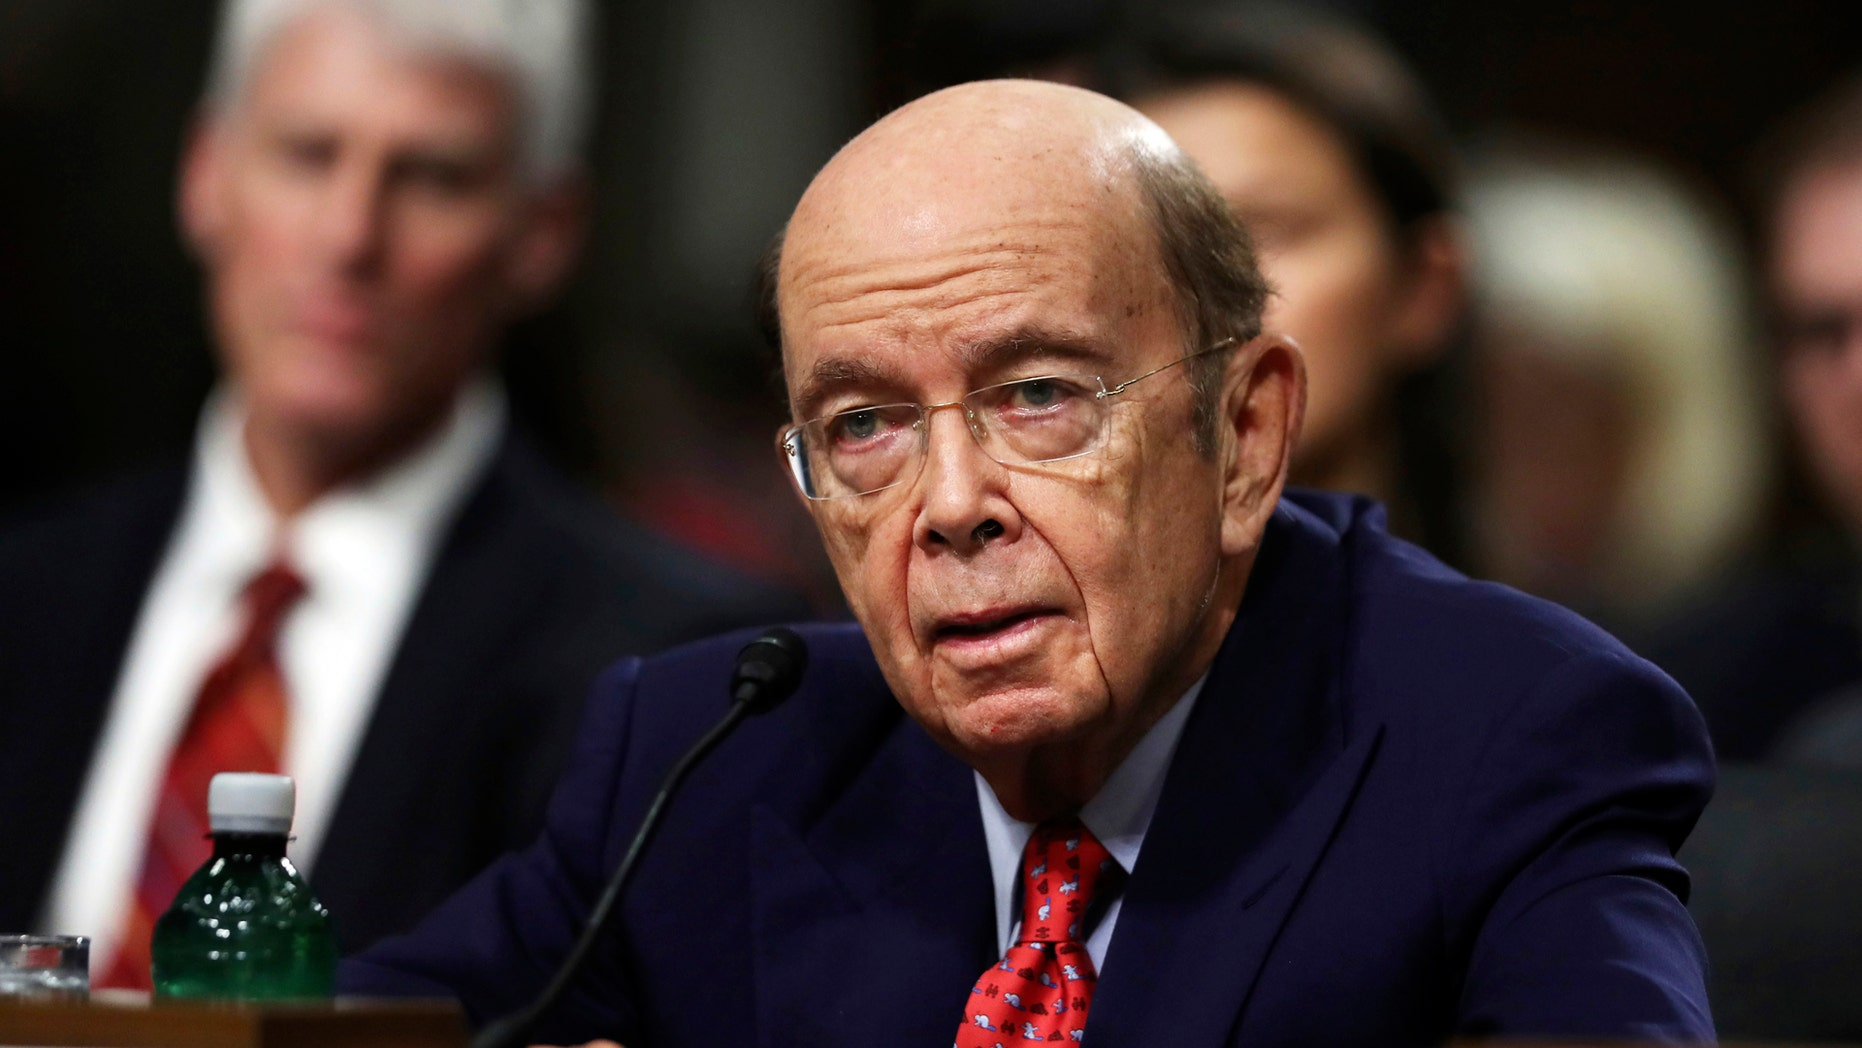 Commerce Secretary Wilbur Ross can't be questioned in census suits, Supreme Court rules – Trending Stuff